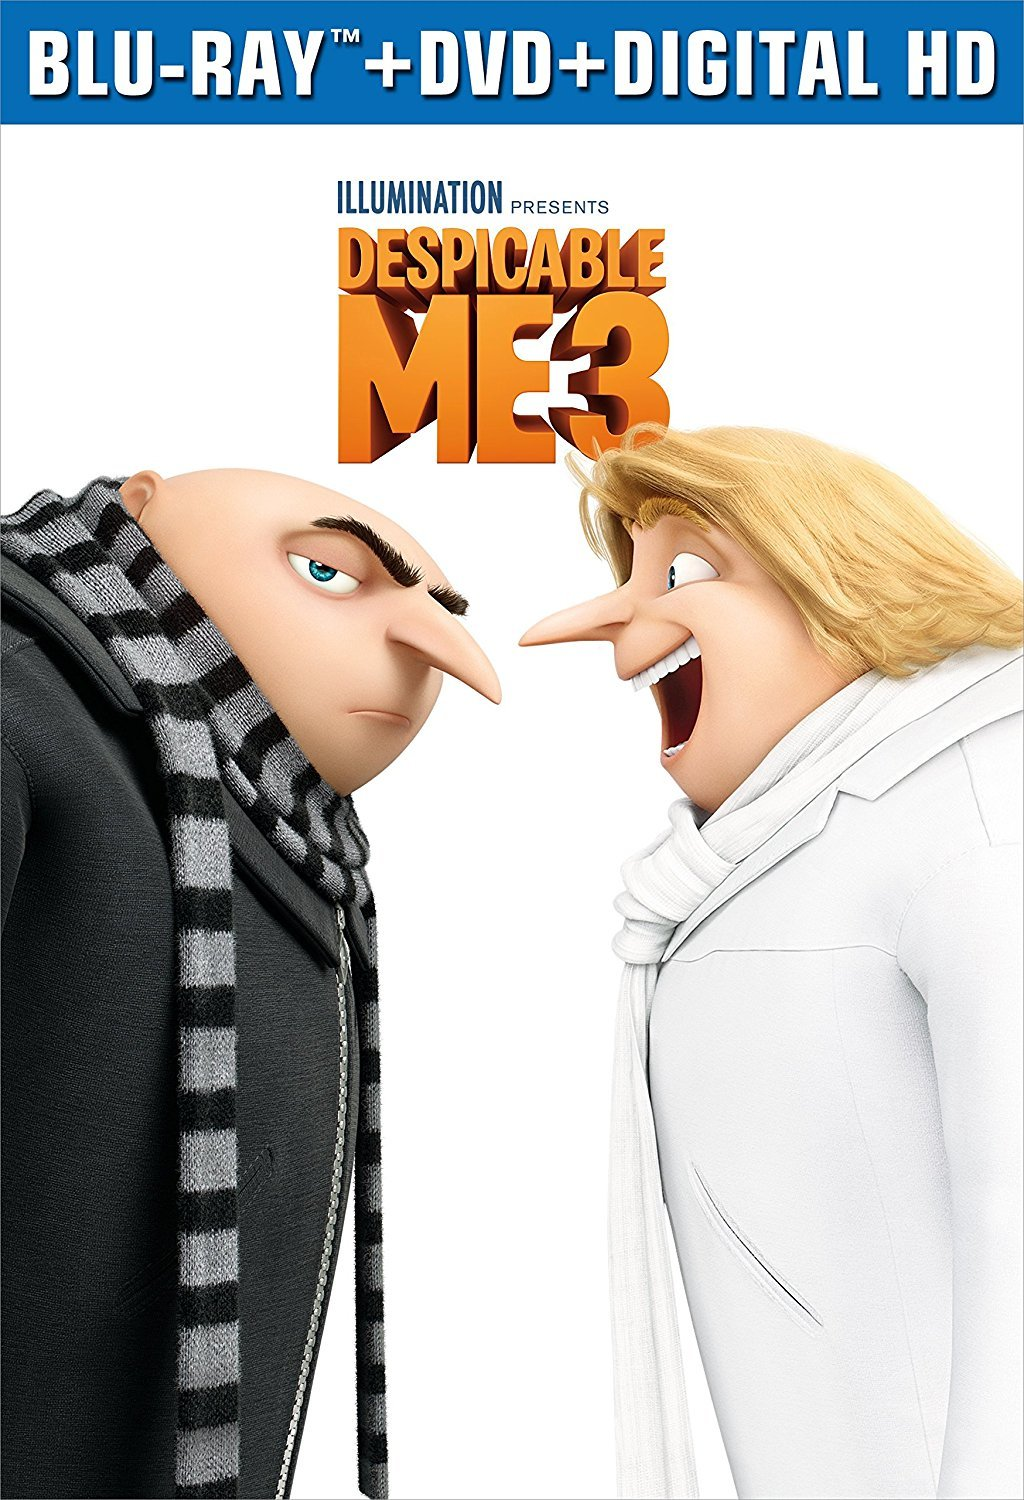 Despicable Me 3 (2017) poster image